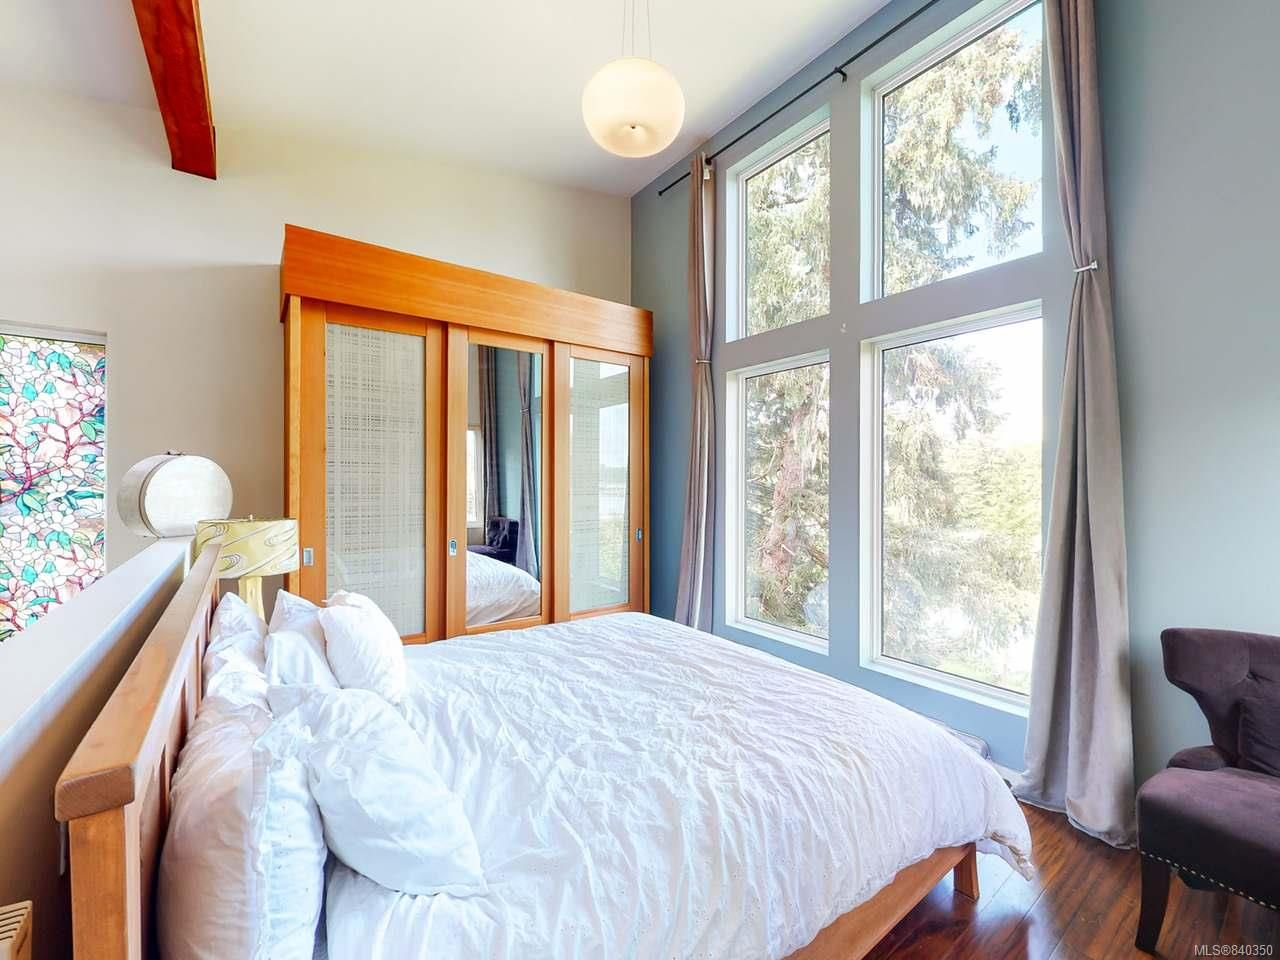 Photo 24: Photos: 1068 Helen Rd in UCLUELET: PA Ucluelet House for sale (Port Alberni)  : MLS®# 840350